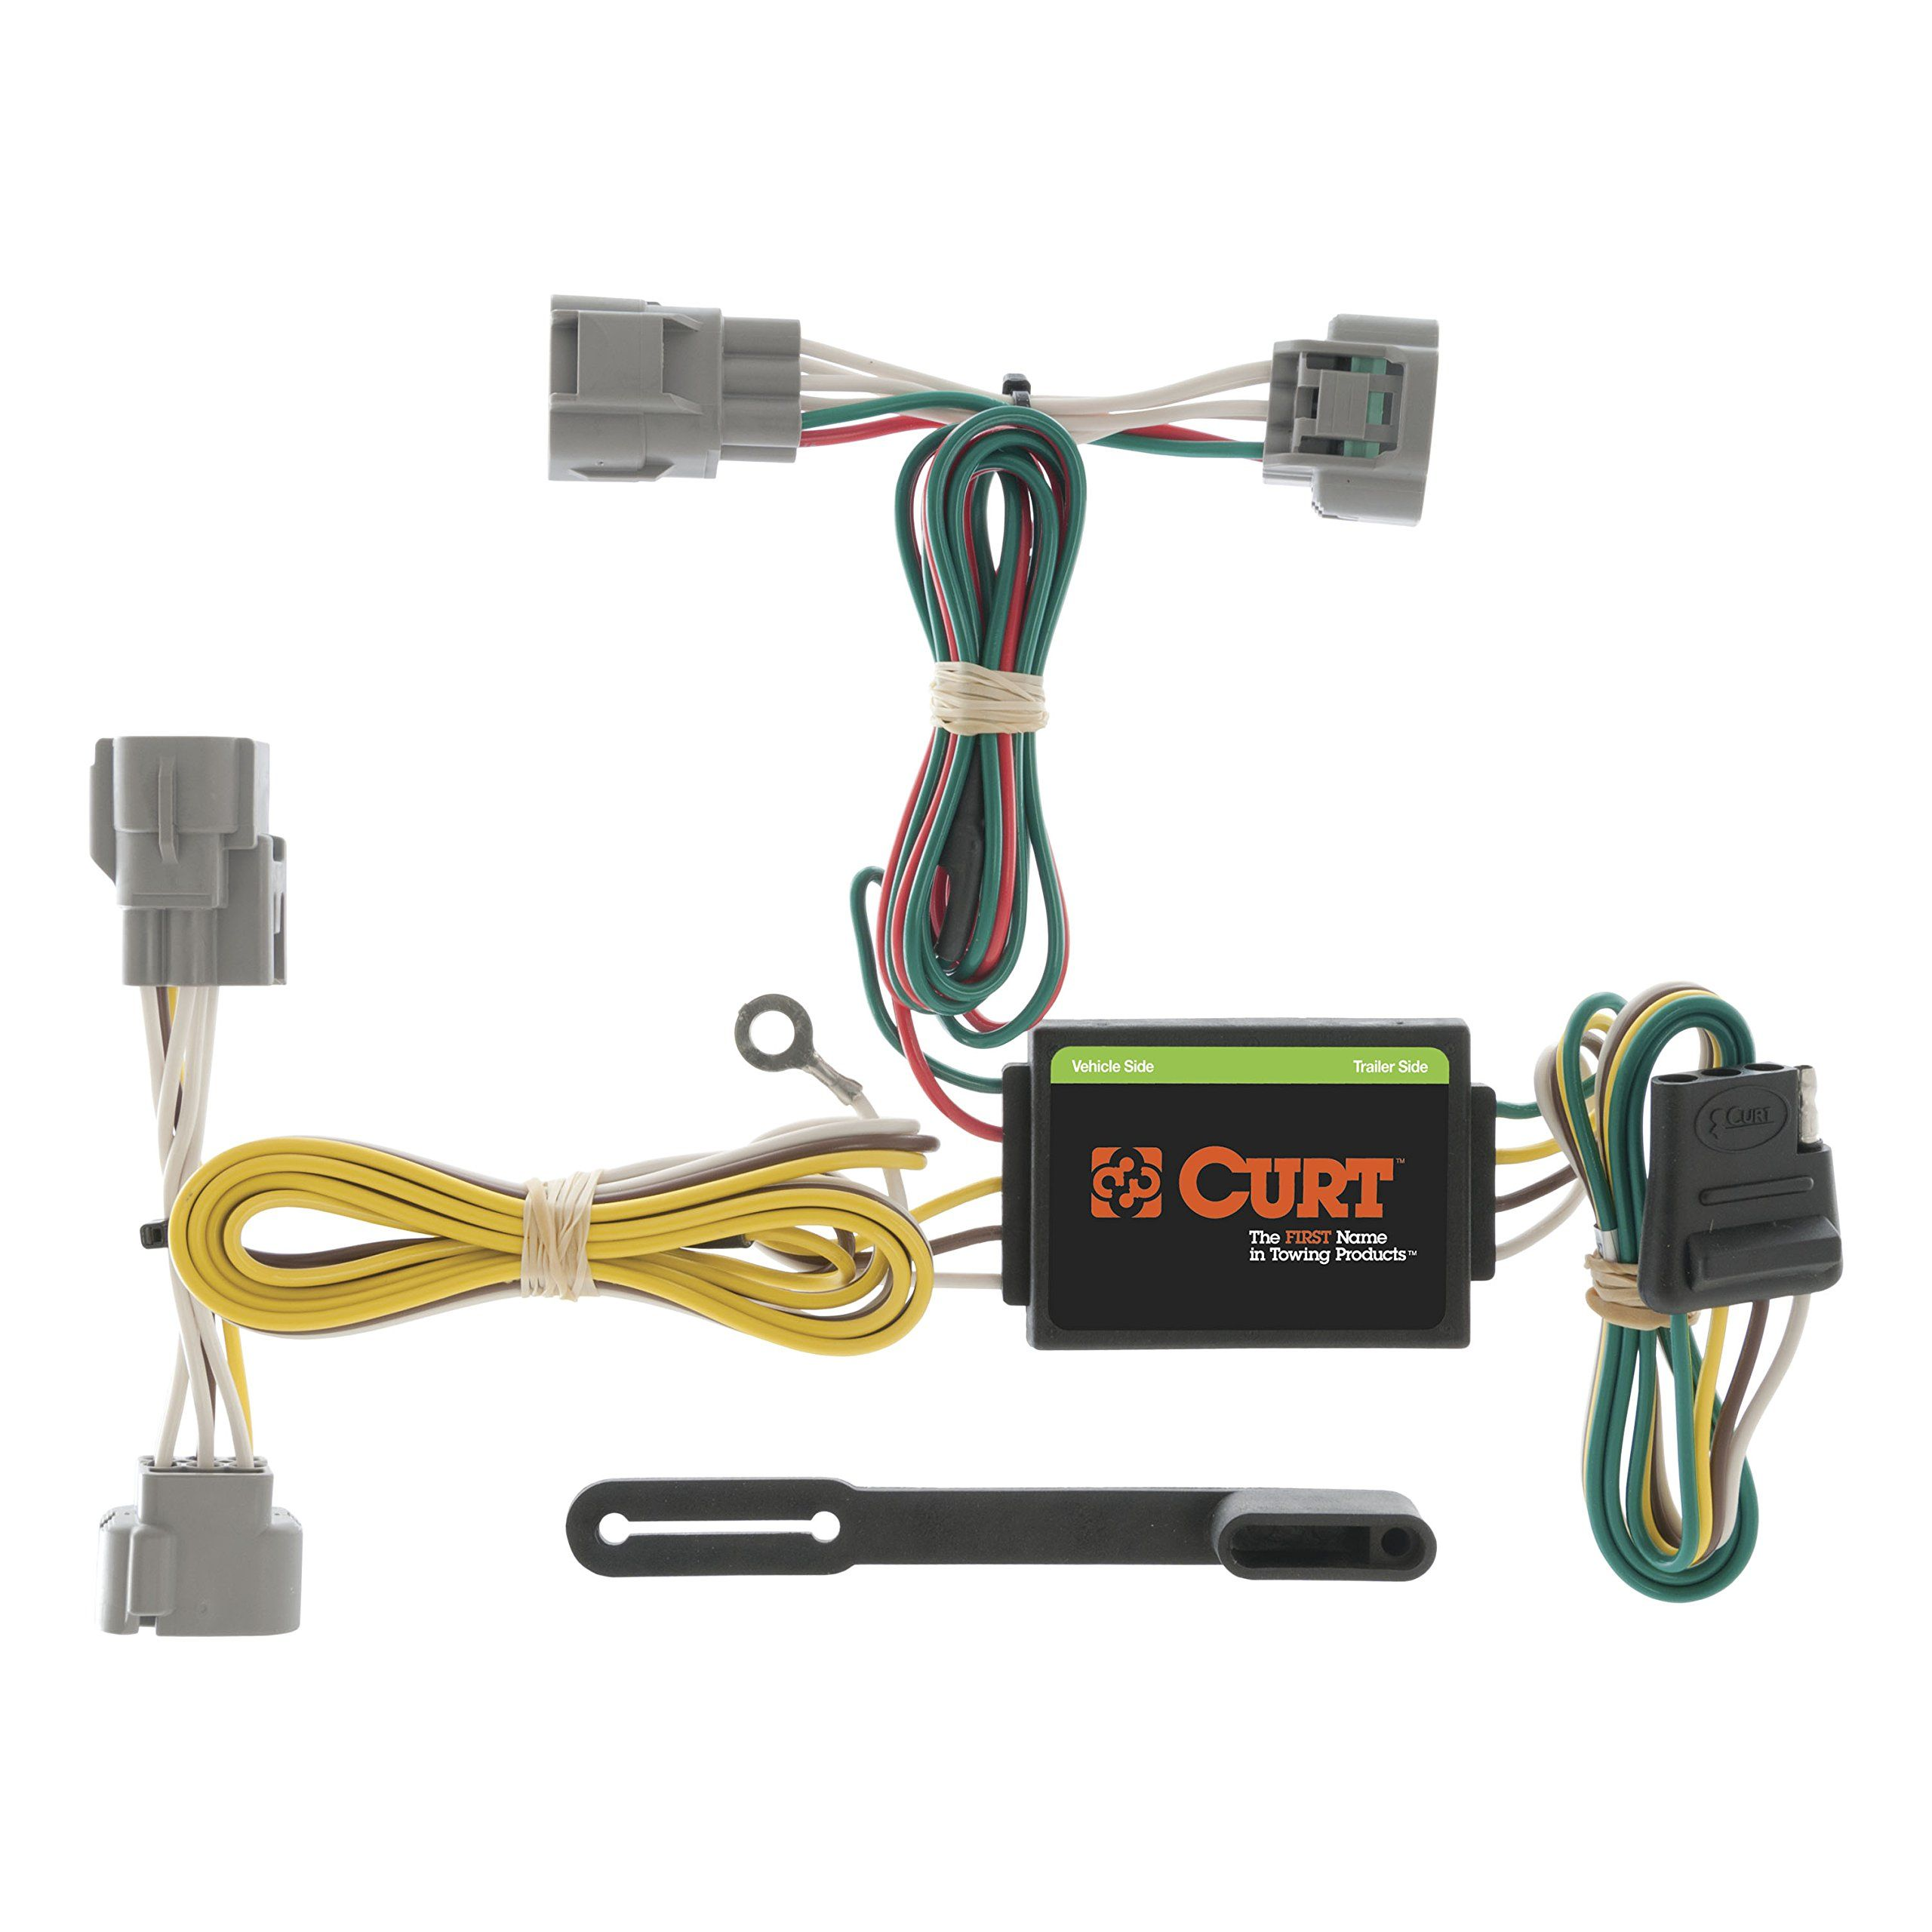 curt 55513 custom wiring harness automotive parts and accessories rh pinterest com Automotive Wiring Supplies Electrical Wiring Supplies